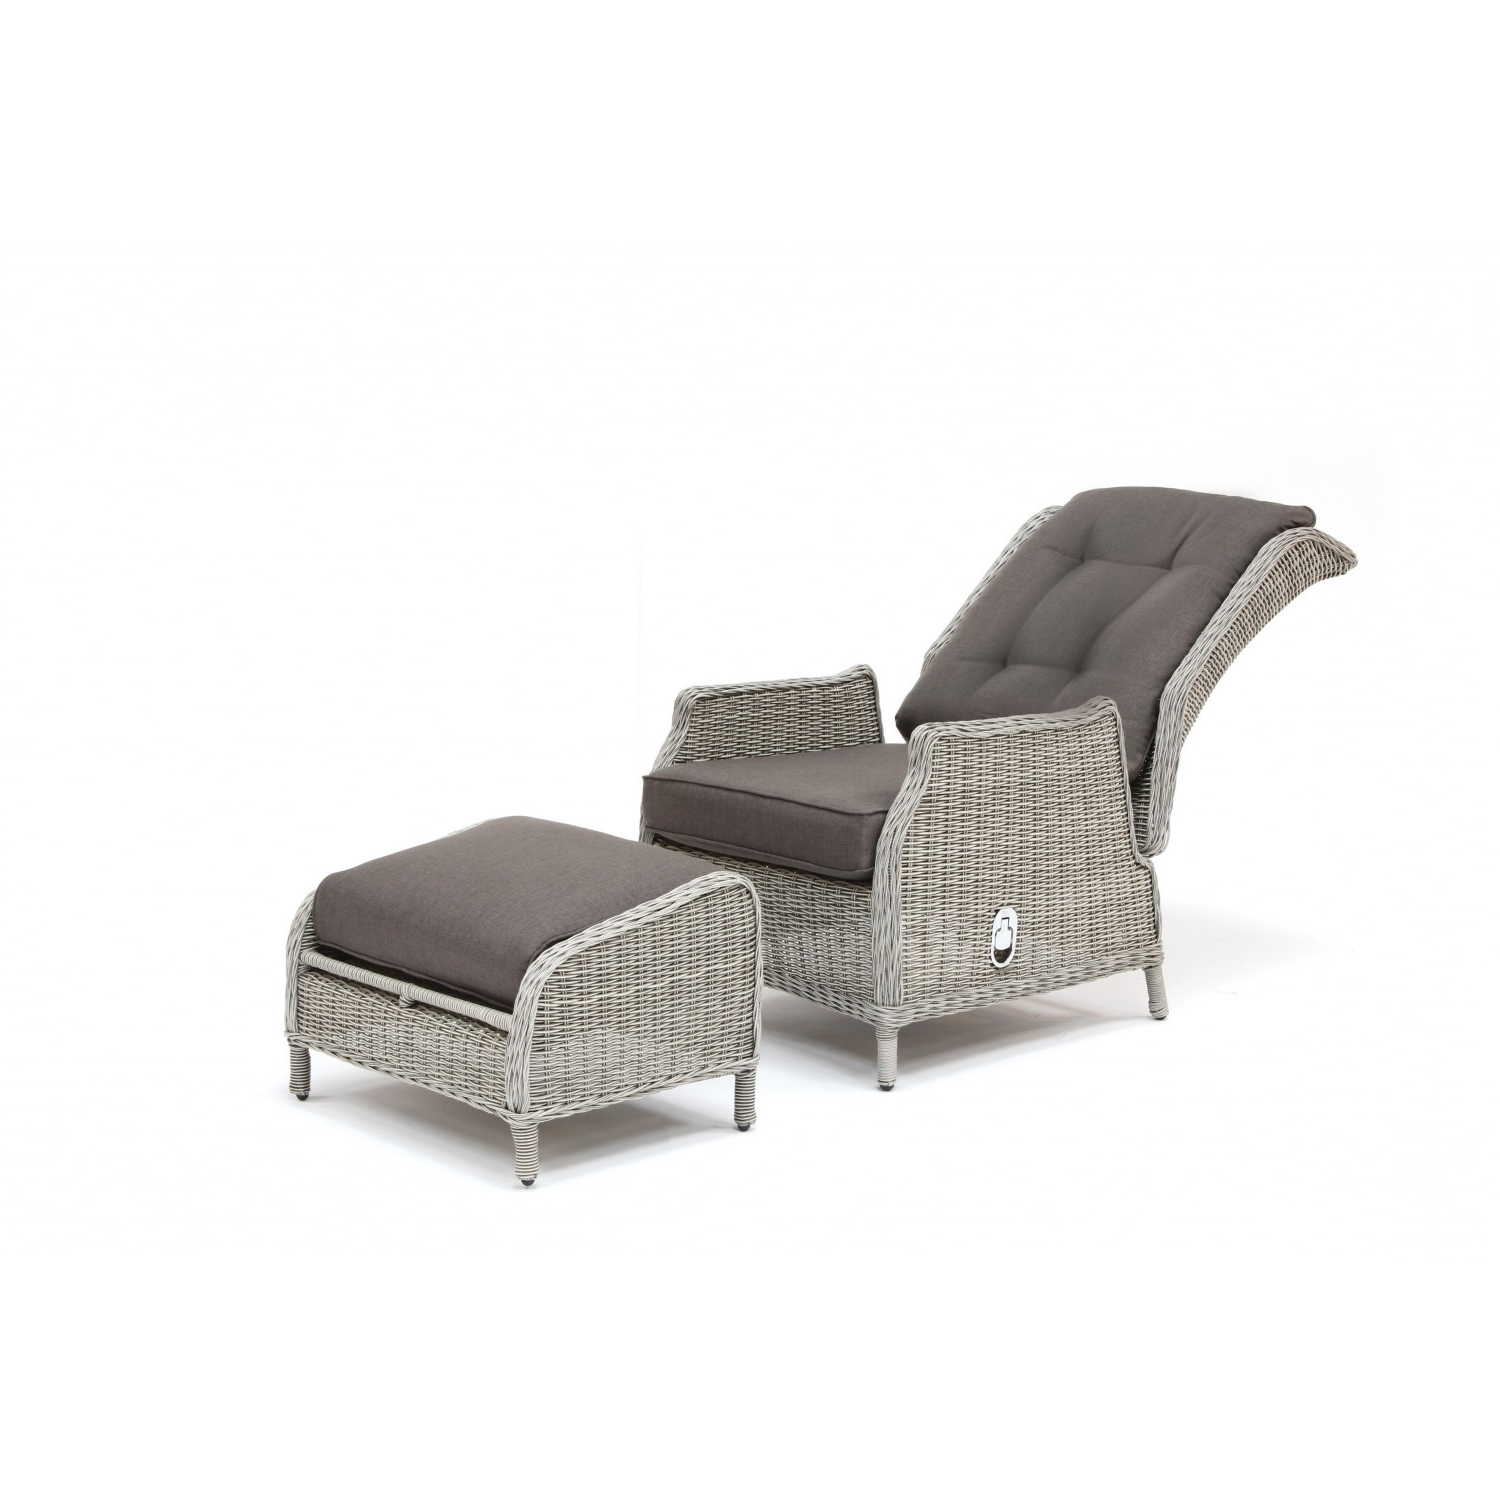 Kettler Jarvis Recliner With Footstool - White Wash Inc Taupe Cushions pertaining to Popular Kettler Chaise Lounge Chairs